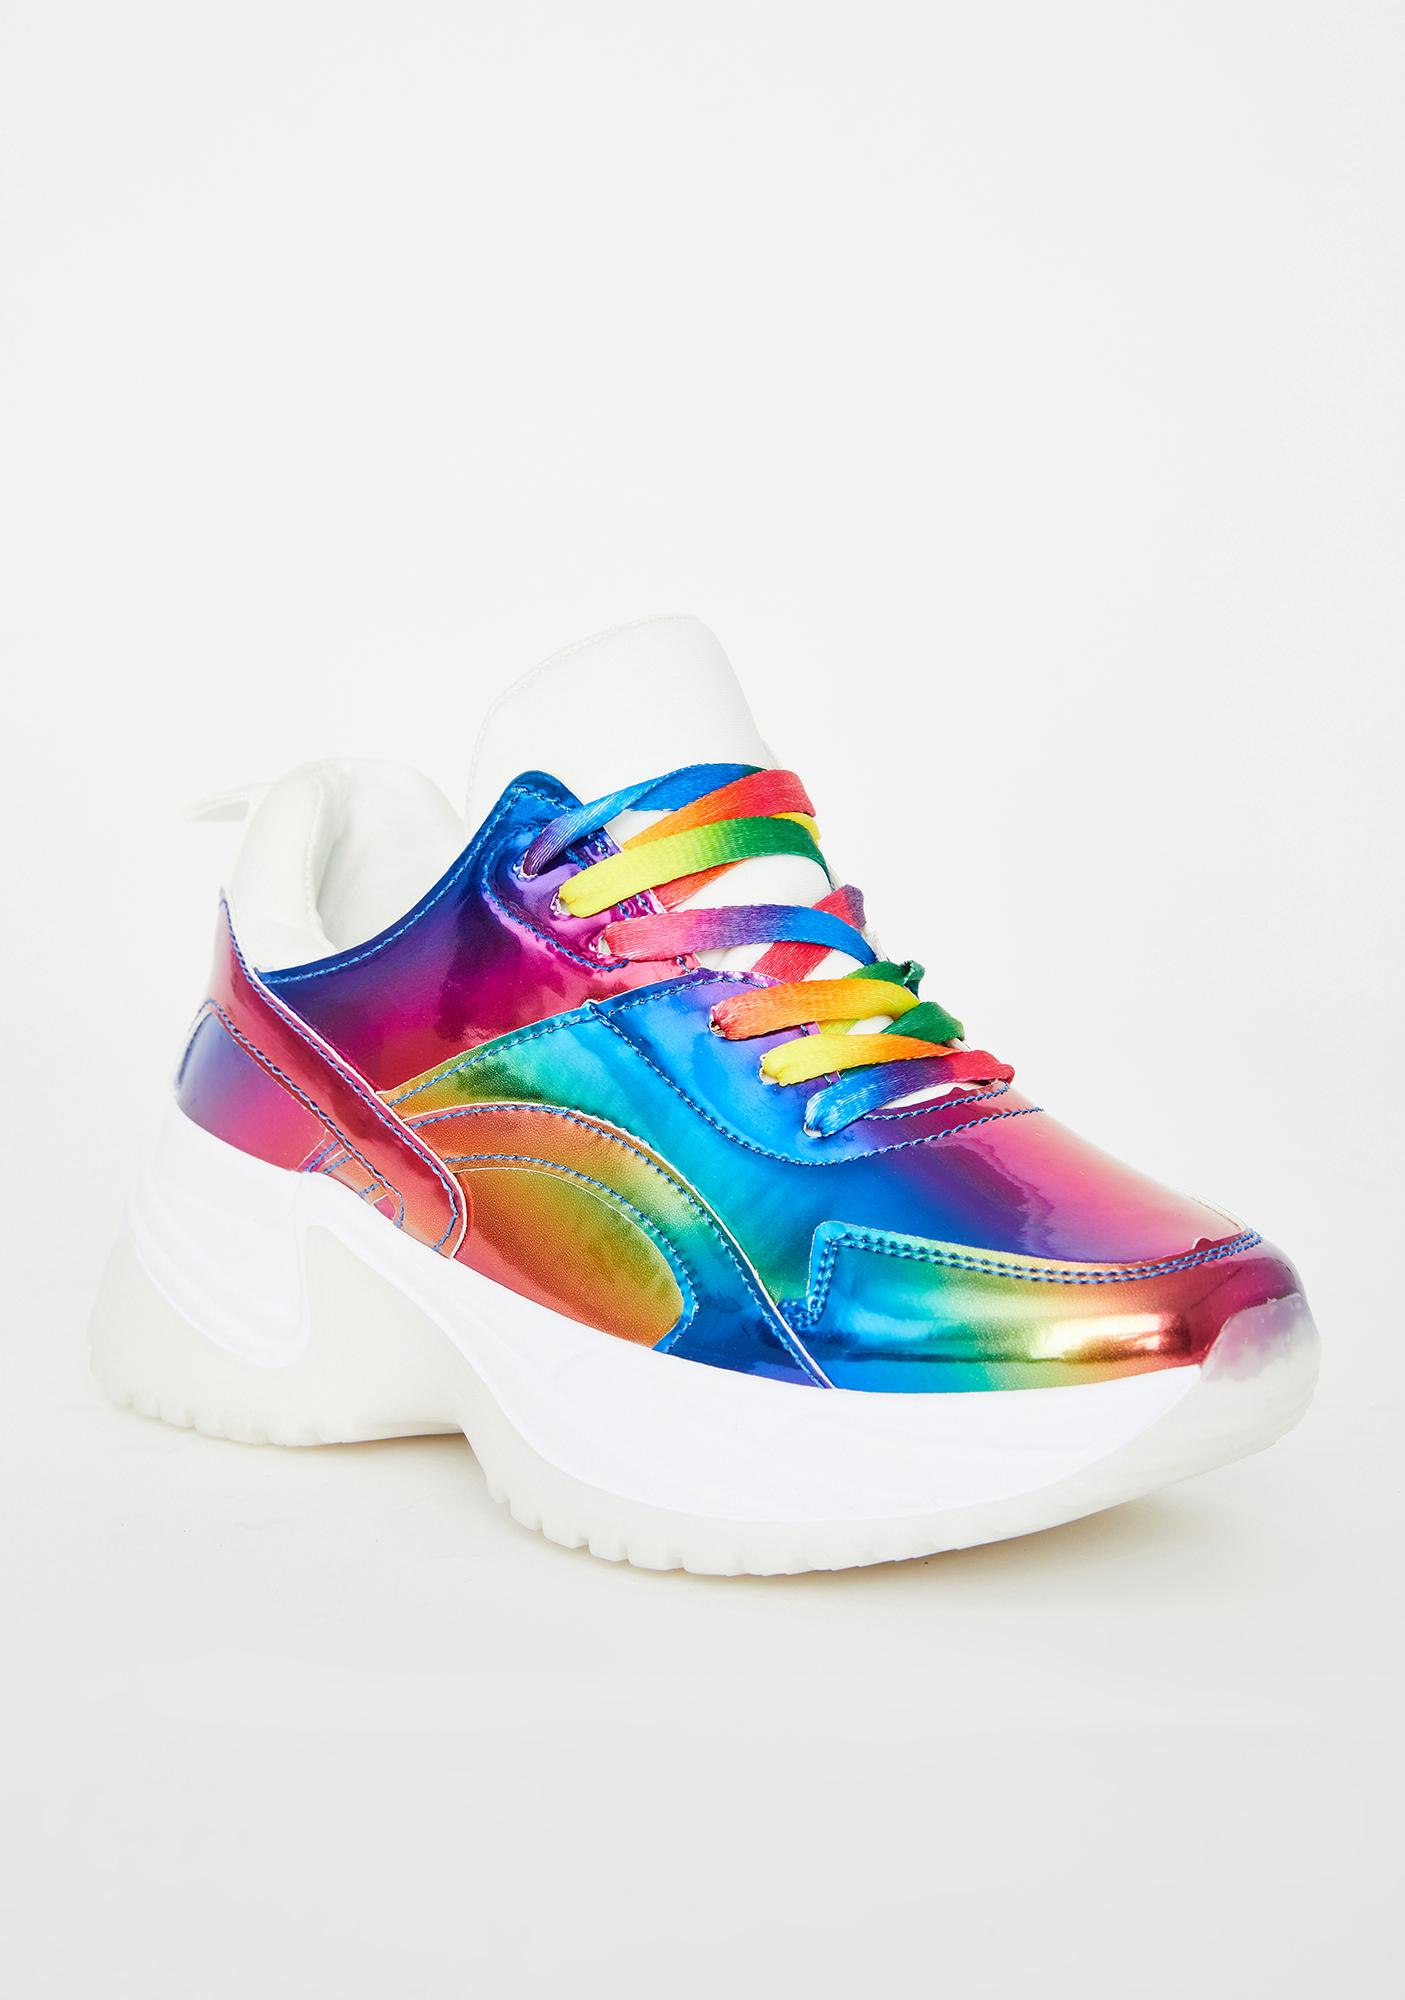 Space Prism Chunky Sneakers